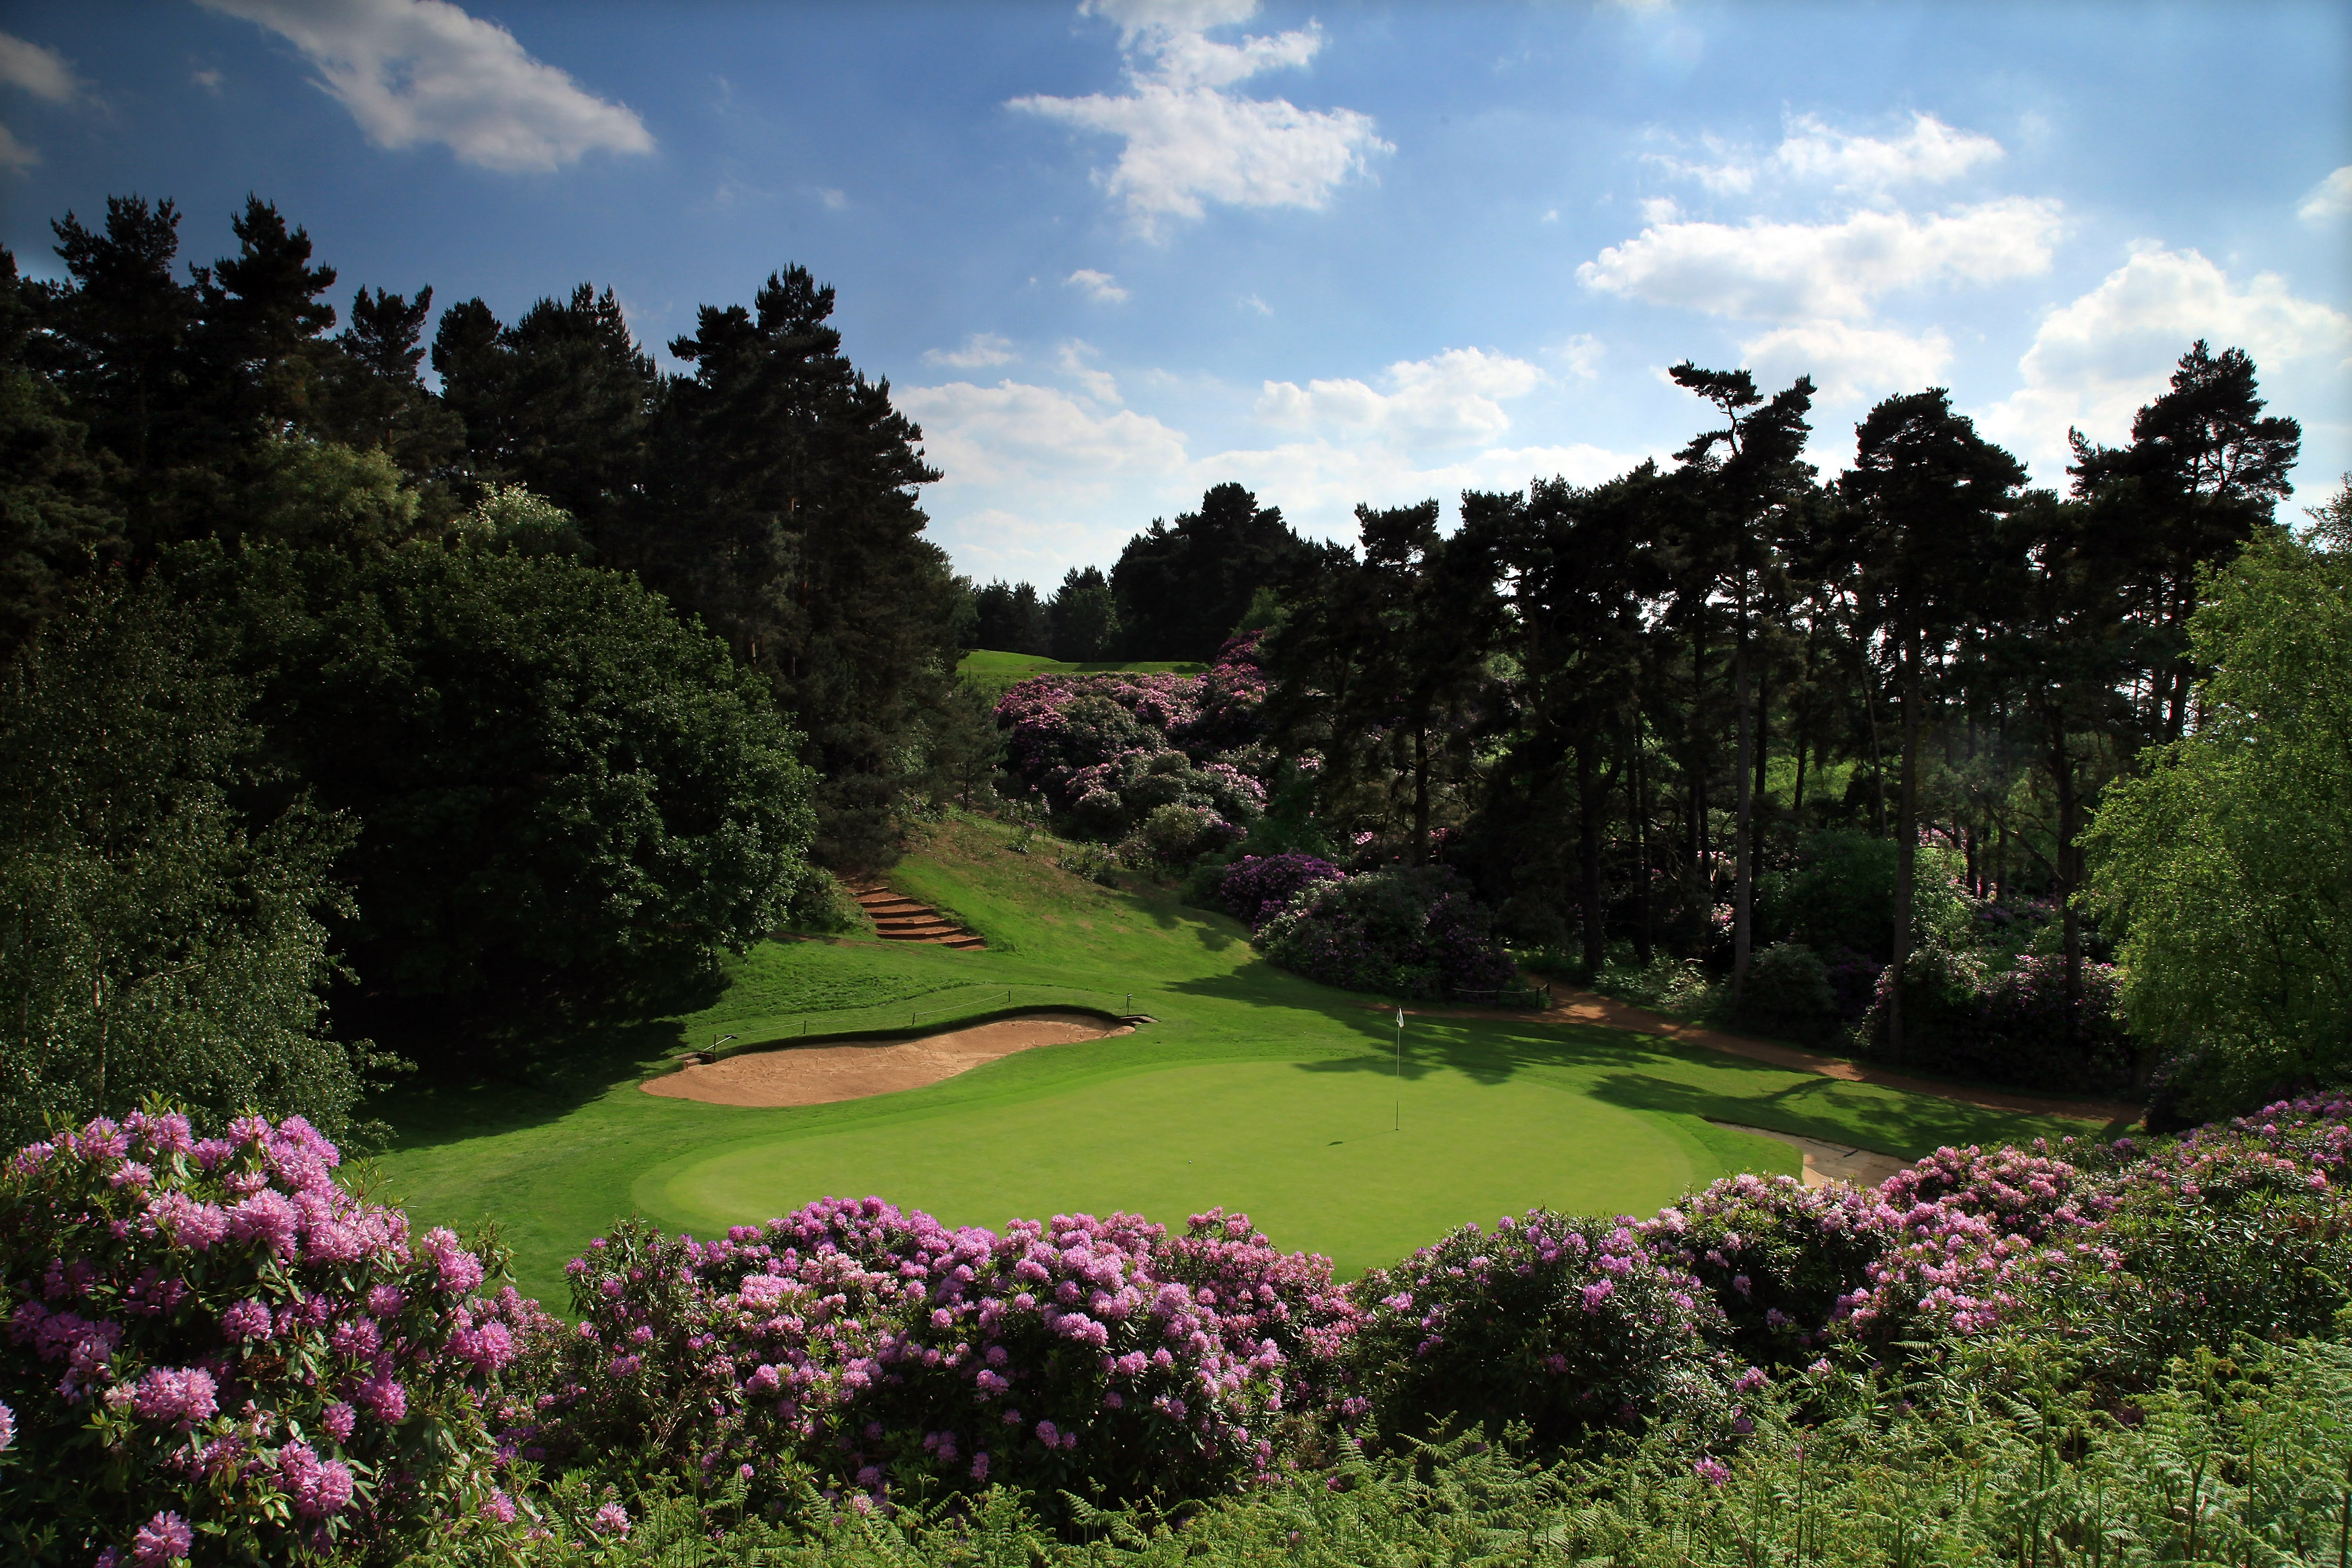 Overview of golf course named Woburn Golf Club - The Duke's Course